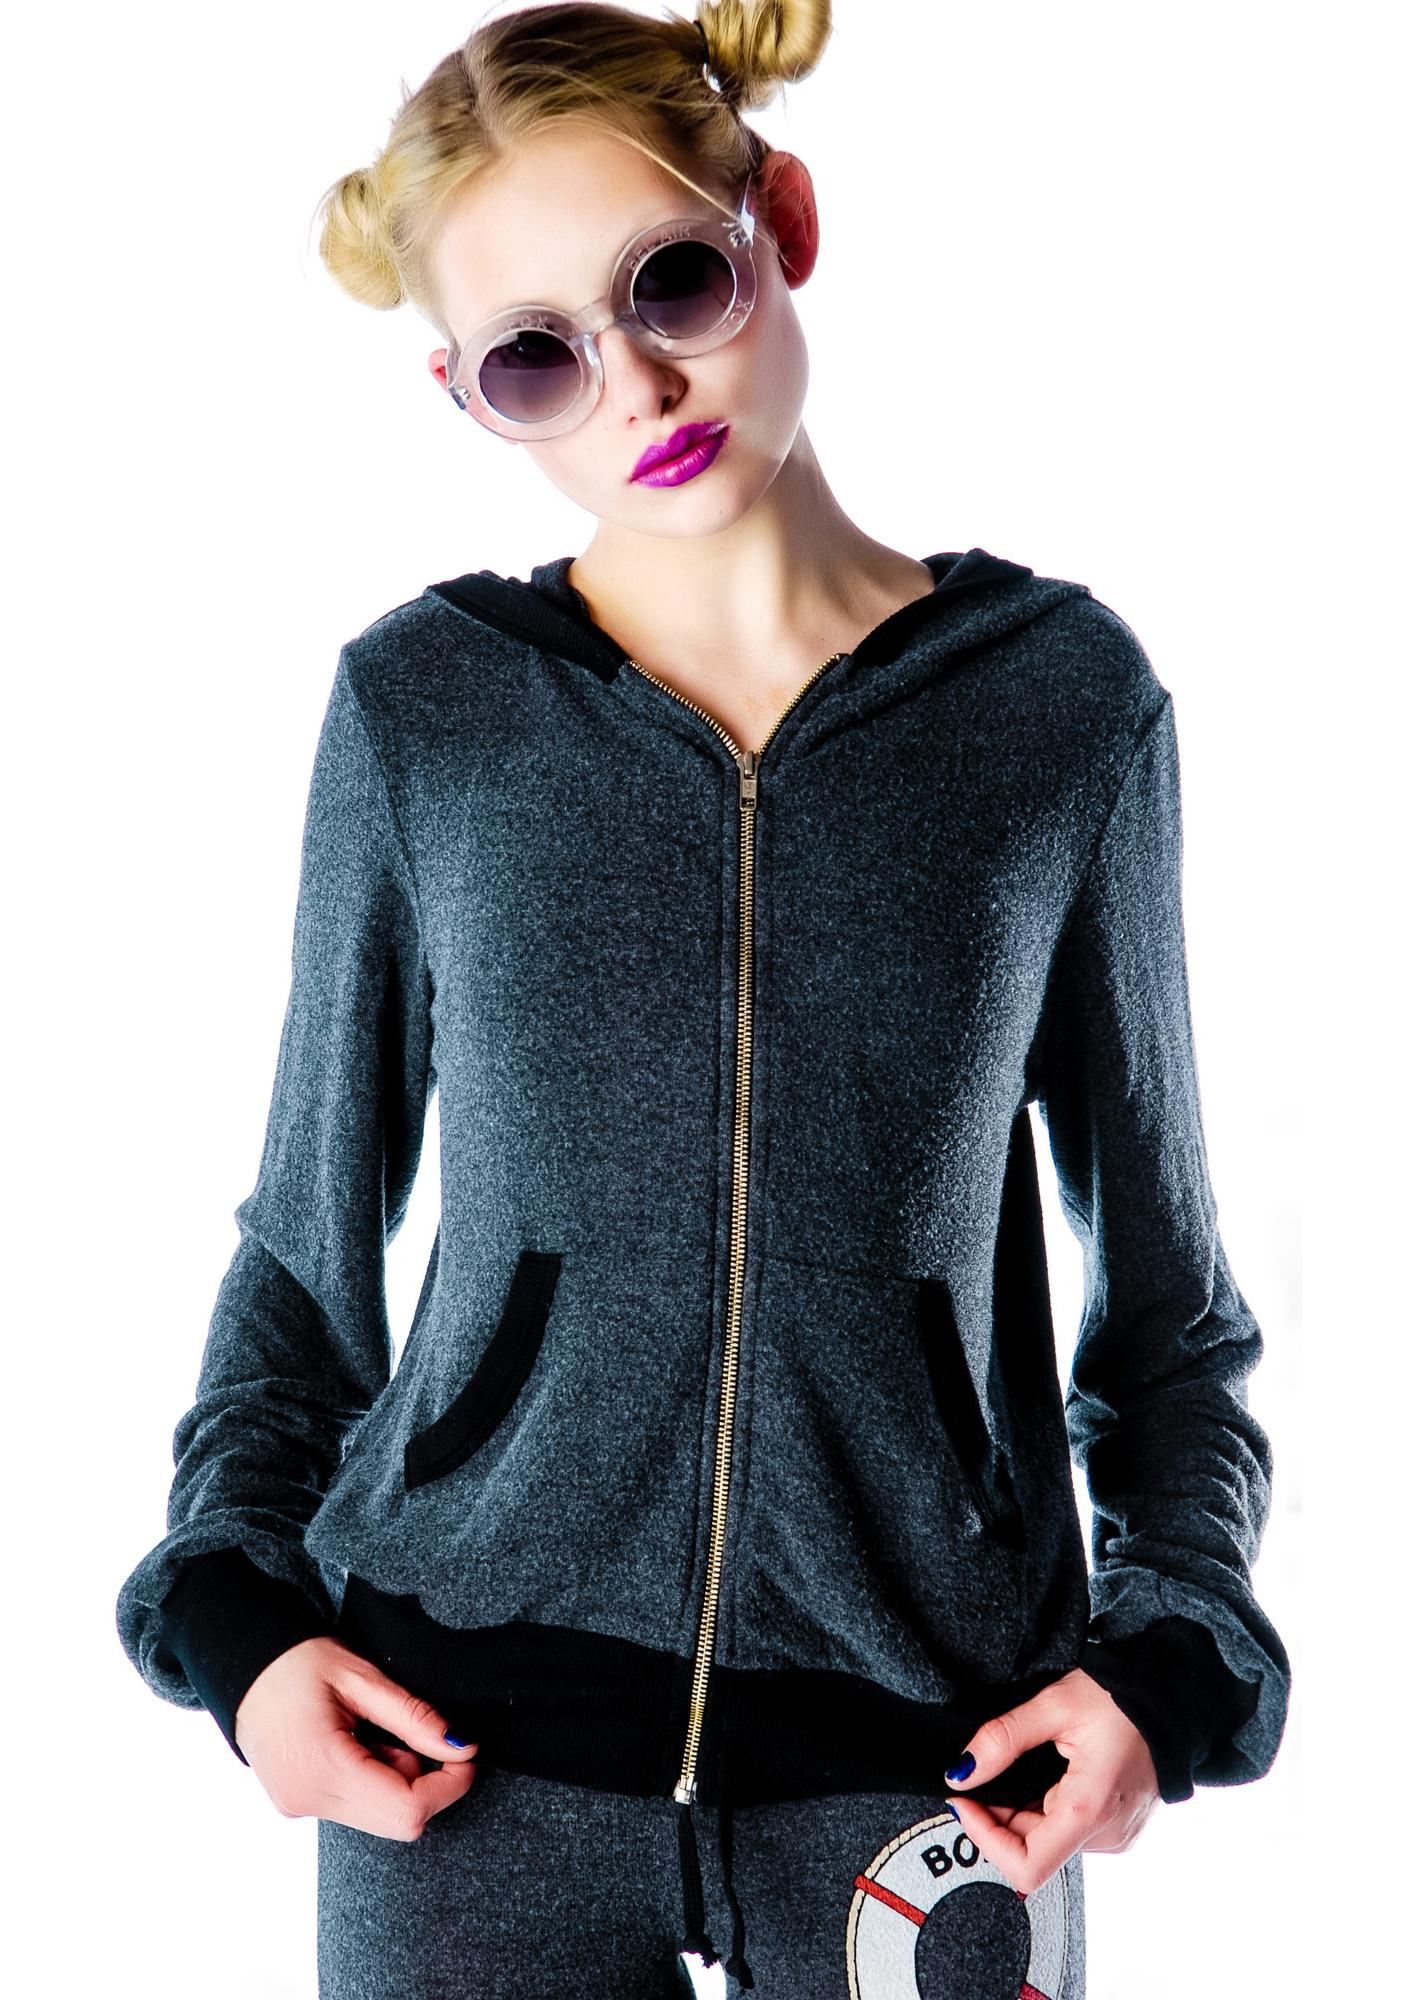 Wildfox Couture No Skinny Dipping Malibu Zip Up Hoodie